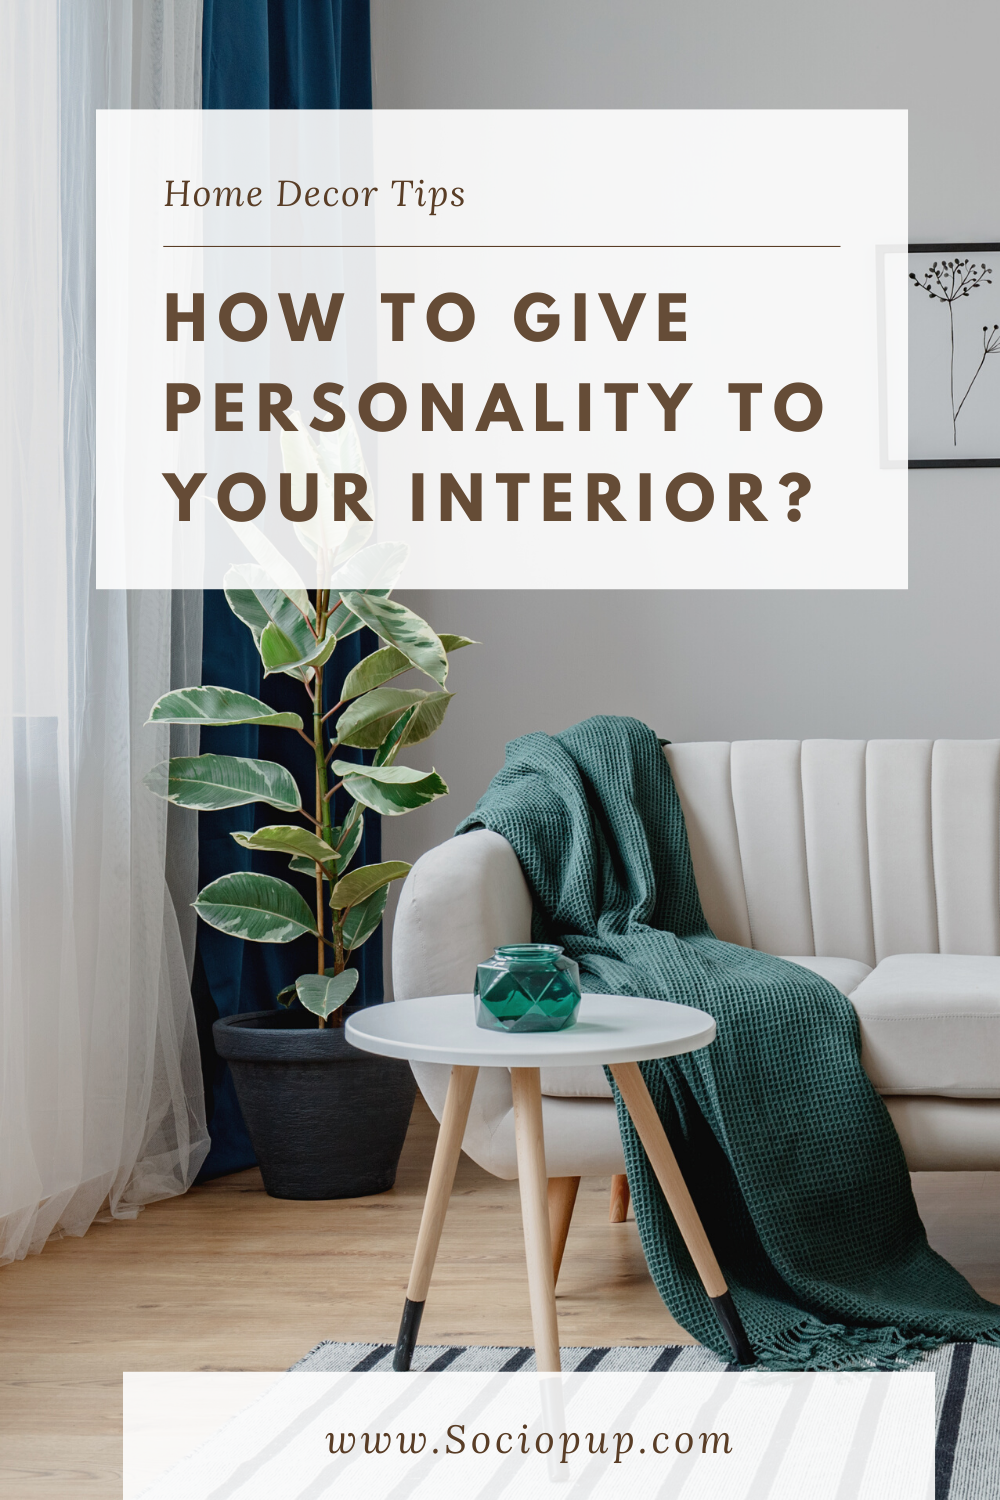 How to give personality to your interior?: There is nothing worse than an impersonal interior. You know this cold and soulless setting that immediately makes you want to leave it! In order to avoid this at home, I suggest you discover how to give personality to your interior. #interior #personaliseinterior #interiortips #interiordesigning #interiordesigntips #homedecortips #homedecorblog